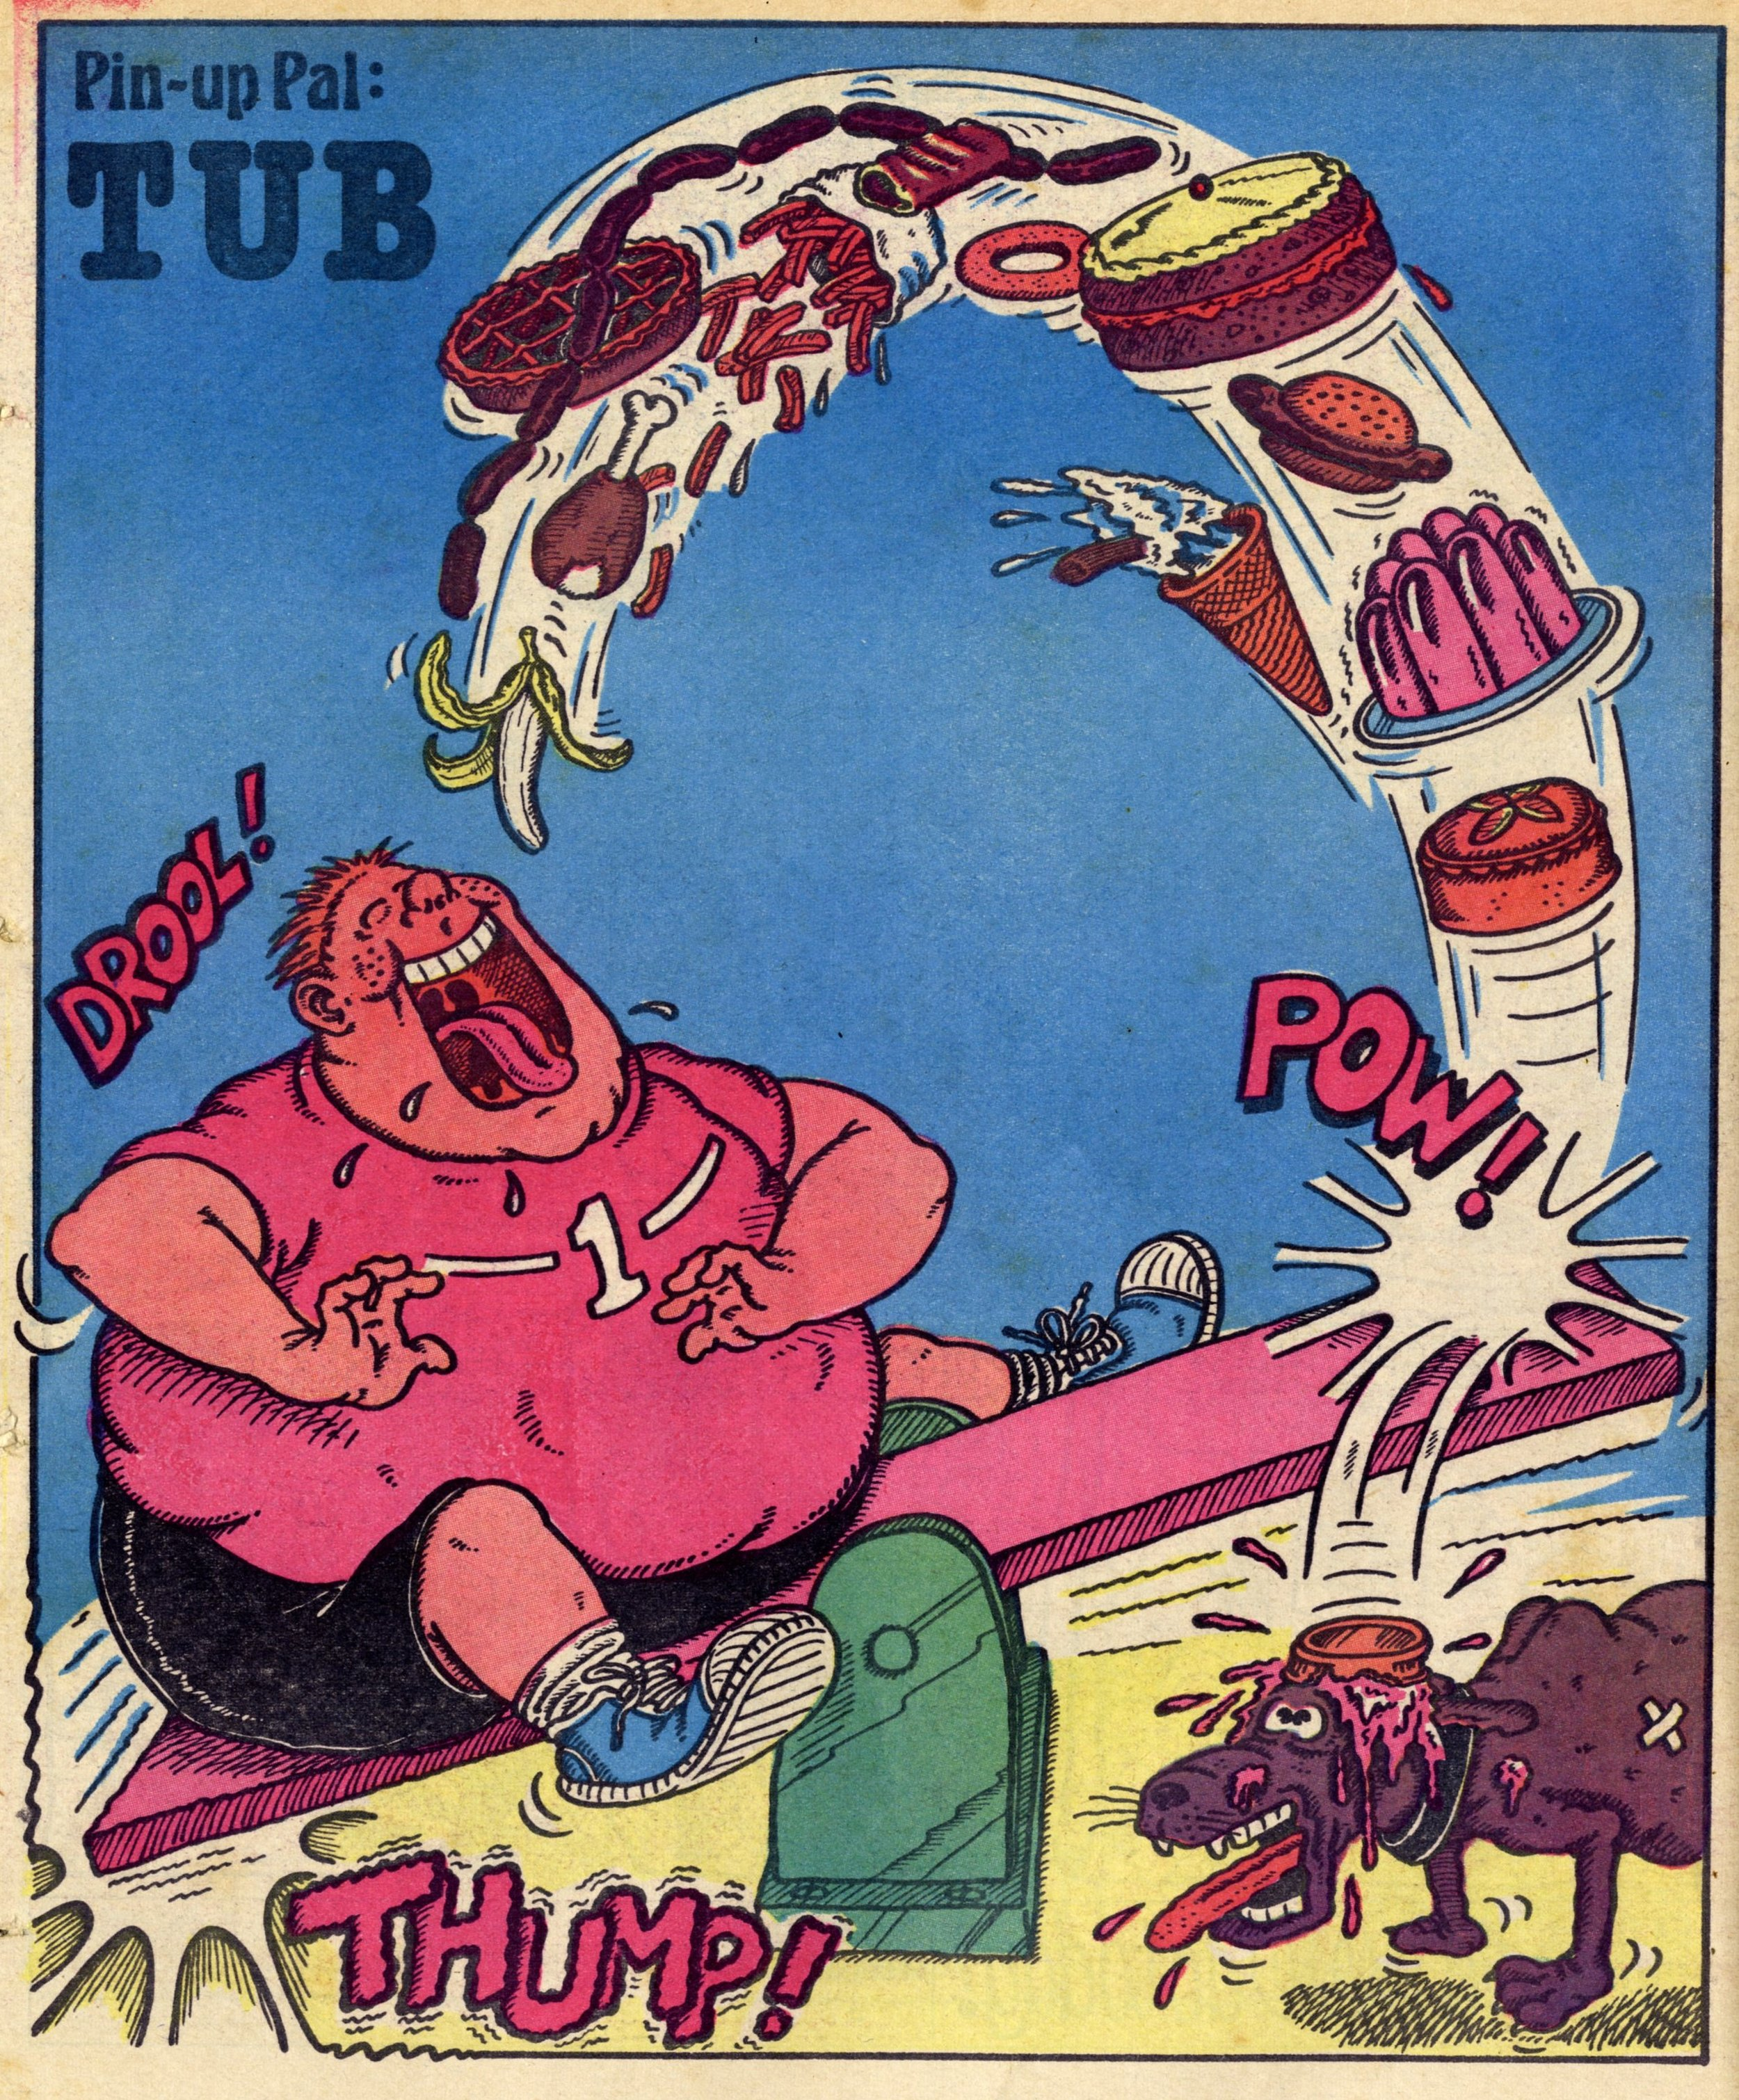 Pin-up Pal: Tub (artist Nigel Edwards), 3 February 1979